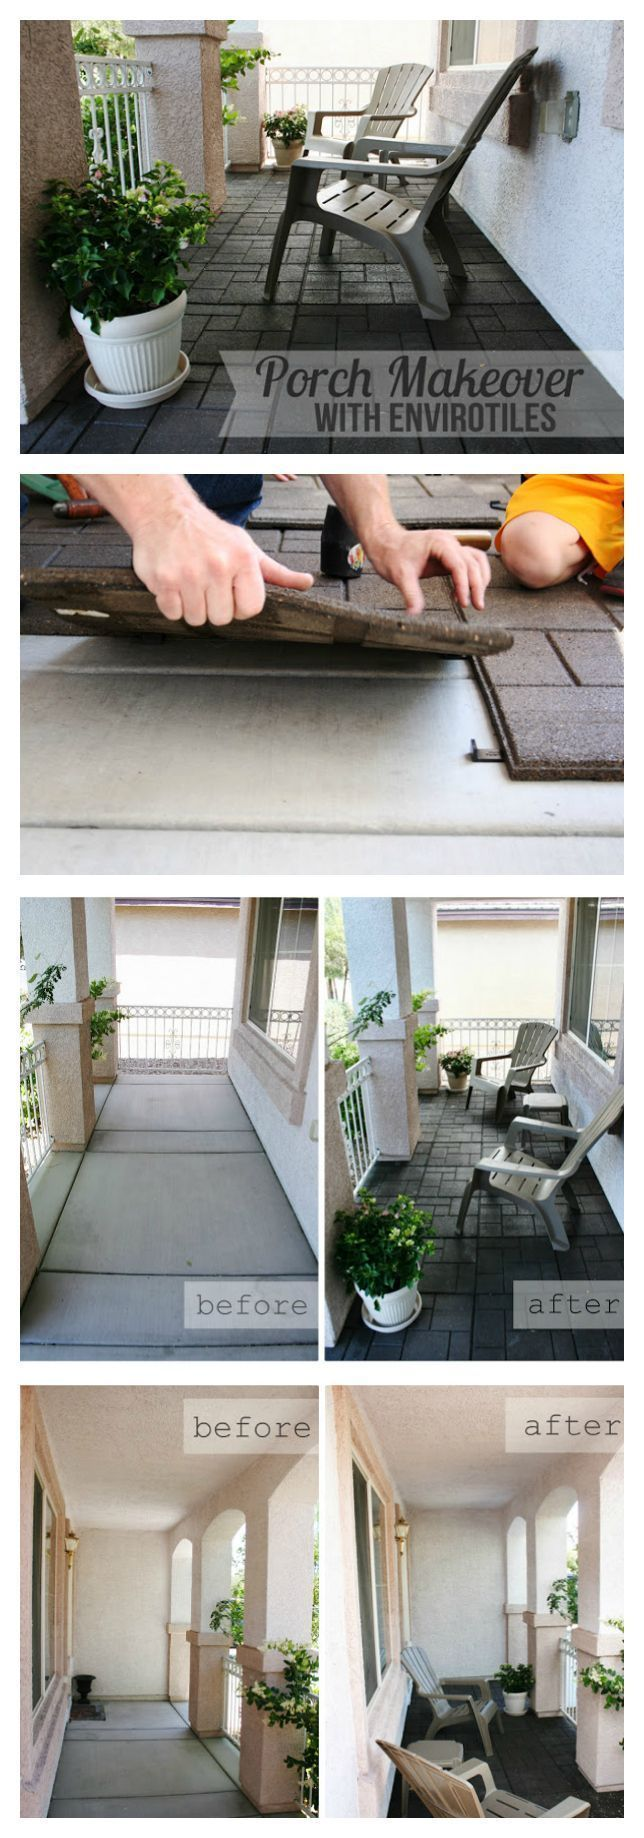 Our Front Porch Makeover using Envirotiles